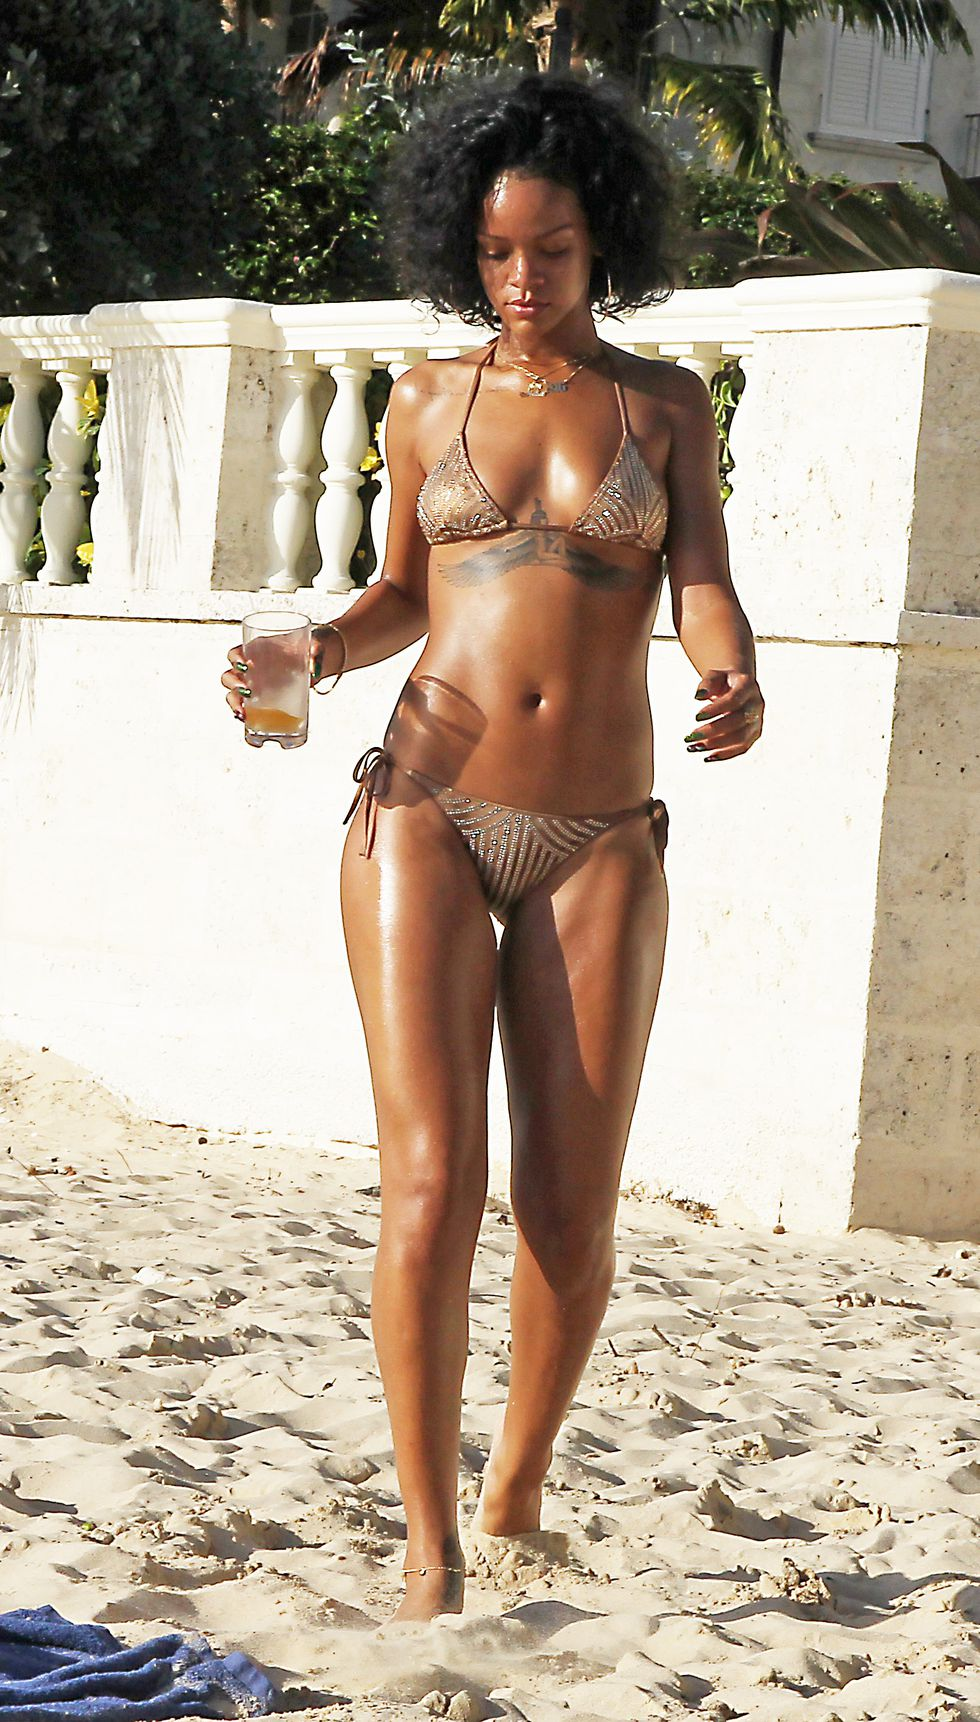 hbz-crazy-swimsuits-rihanna-splash-1528400588